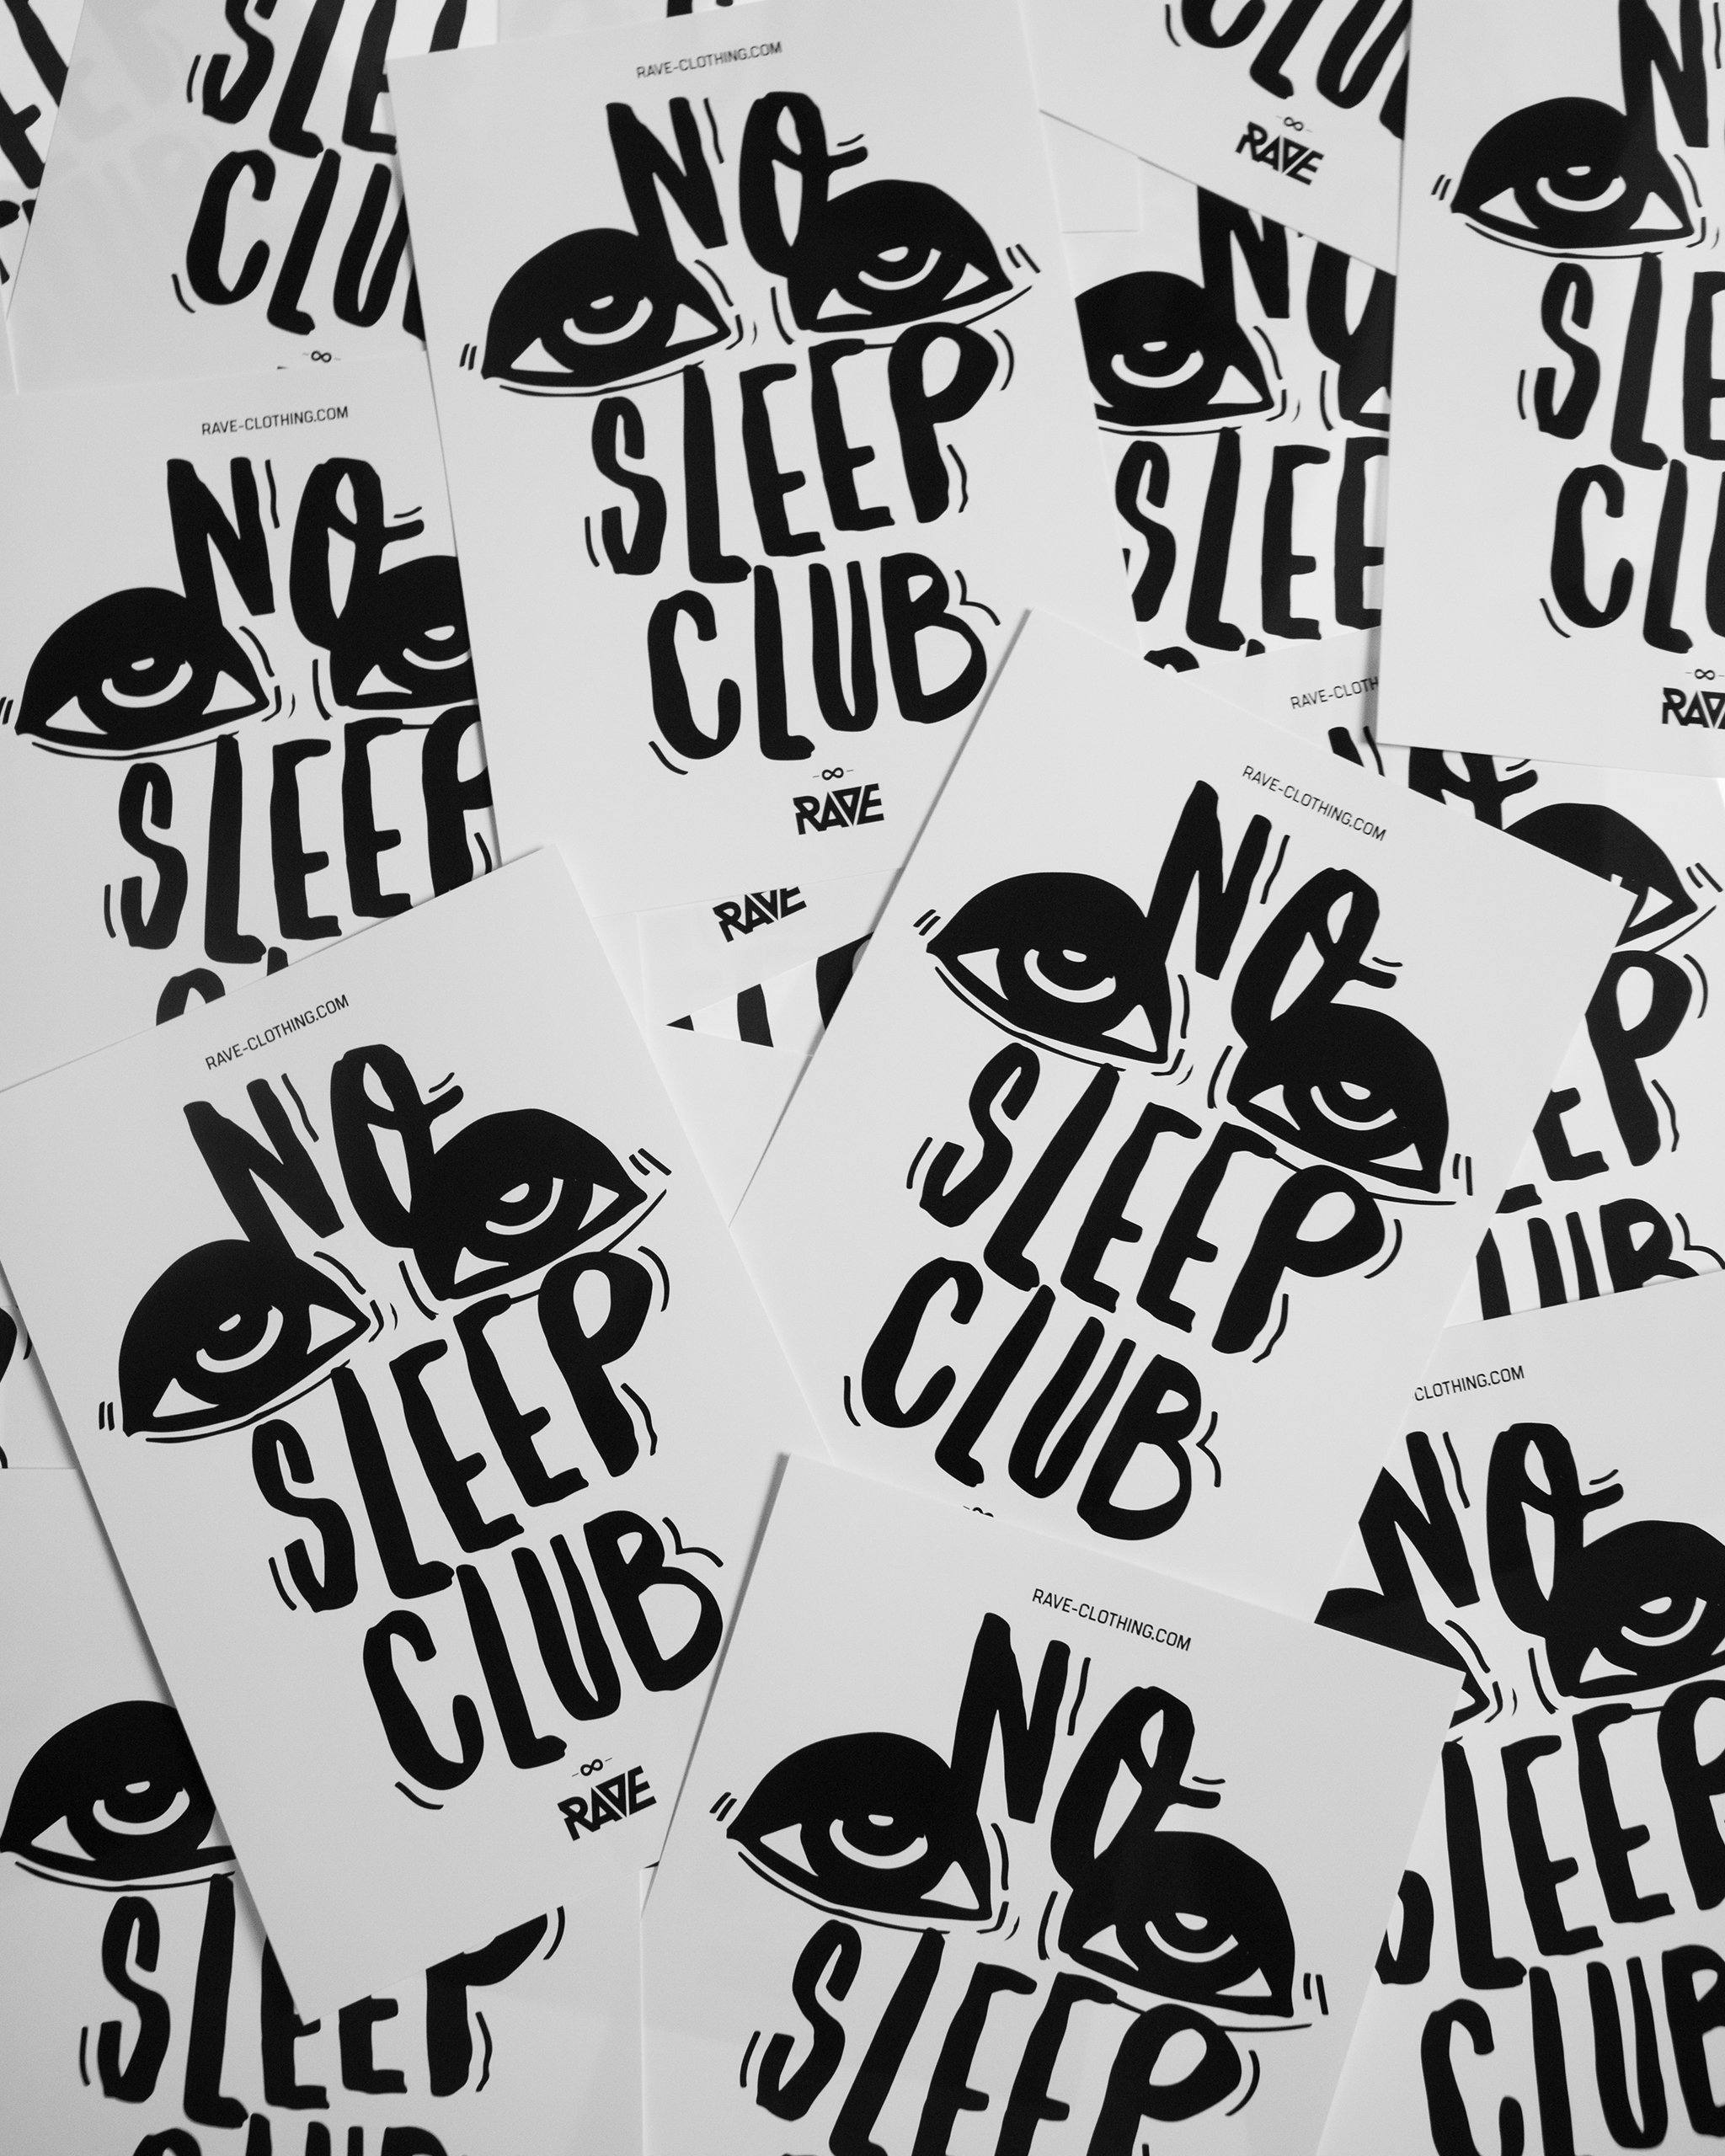 No Sleep Club Sticker from RAVE Clothing